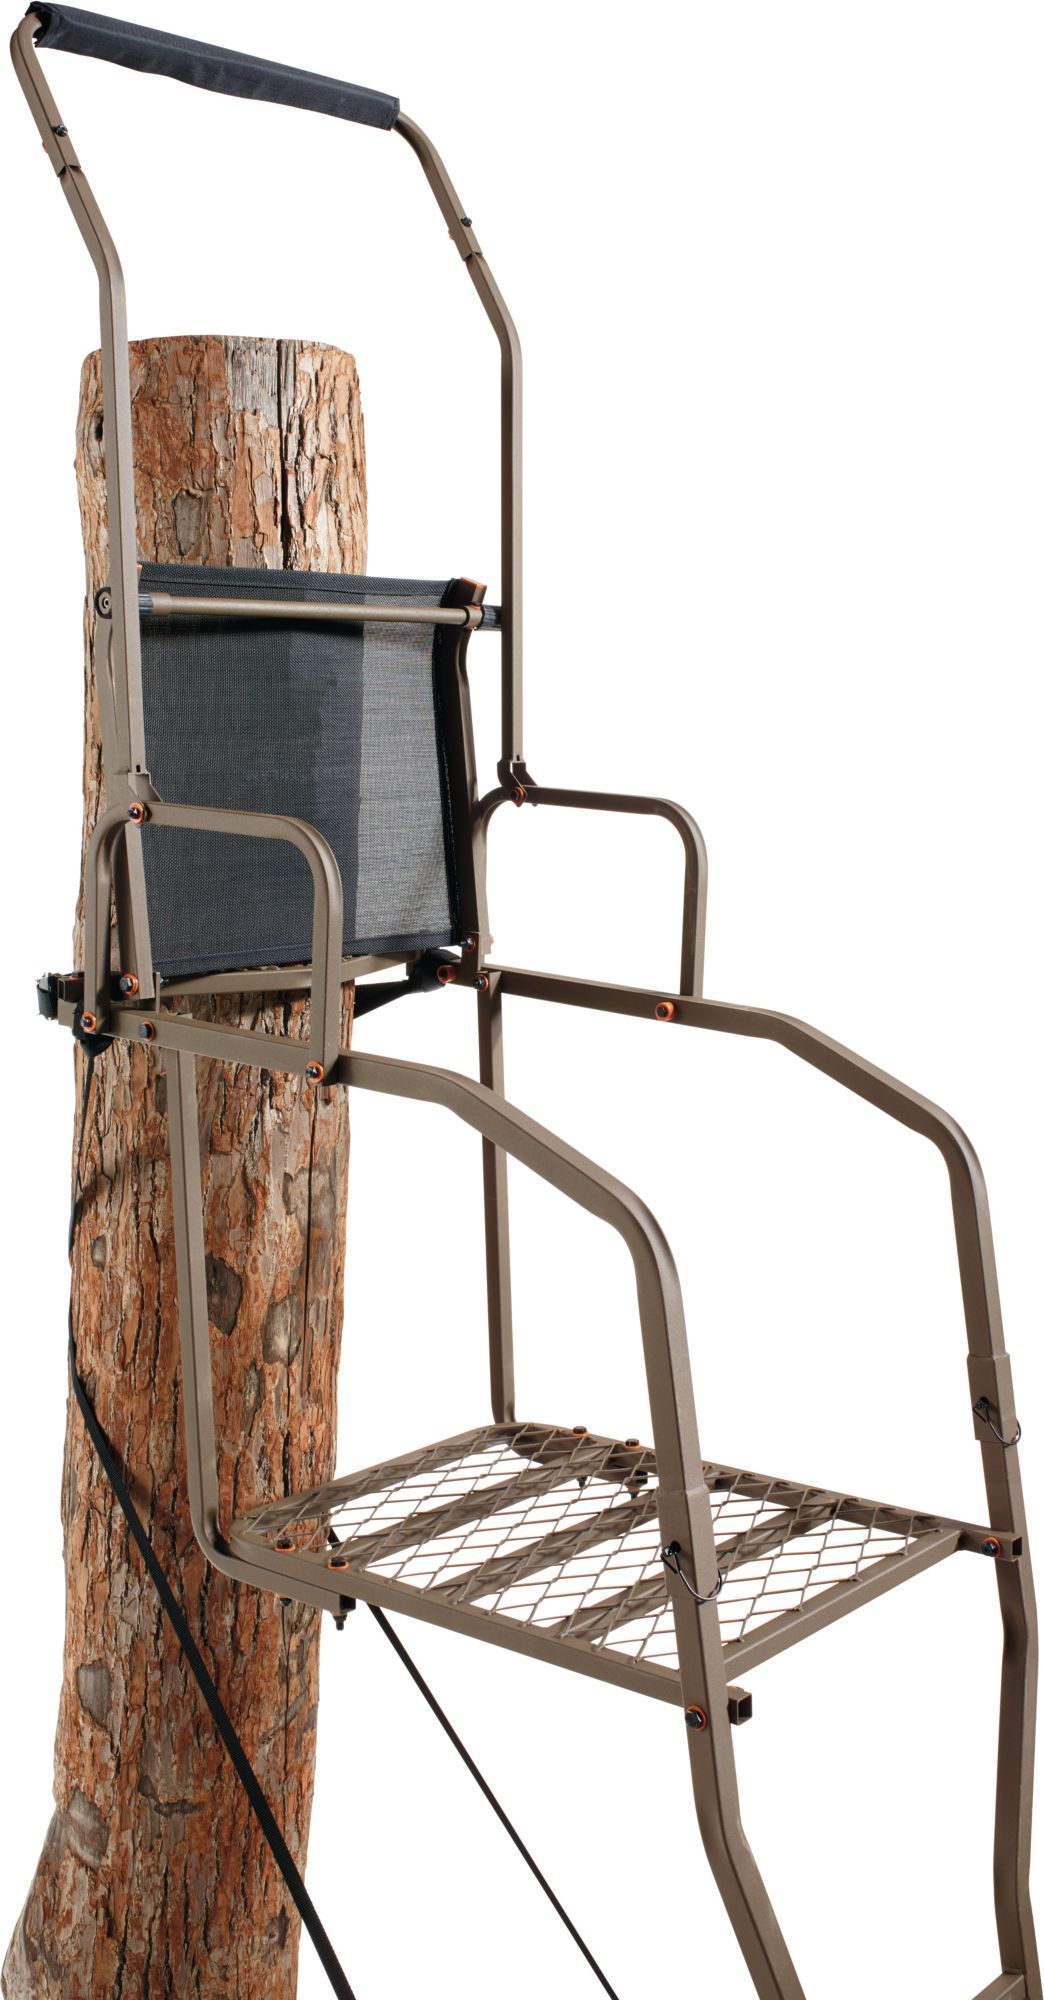 Field & Stream Lookout Deluxe 15' Ladder Stand â Ergo Mesh